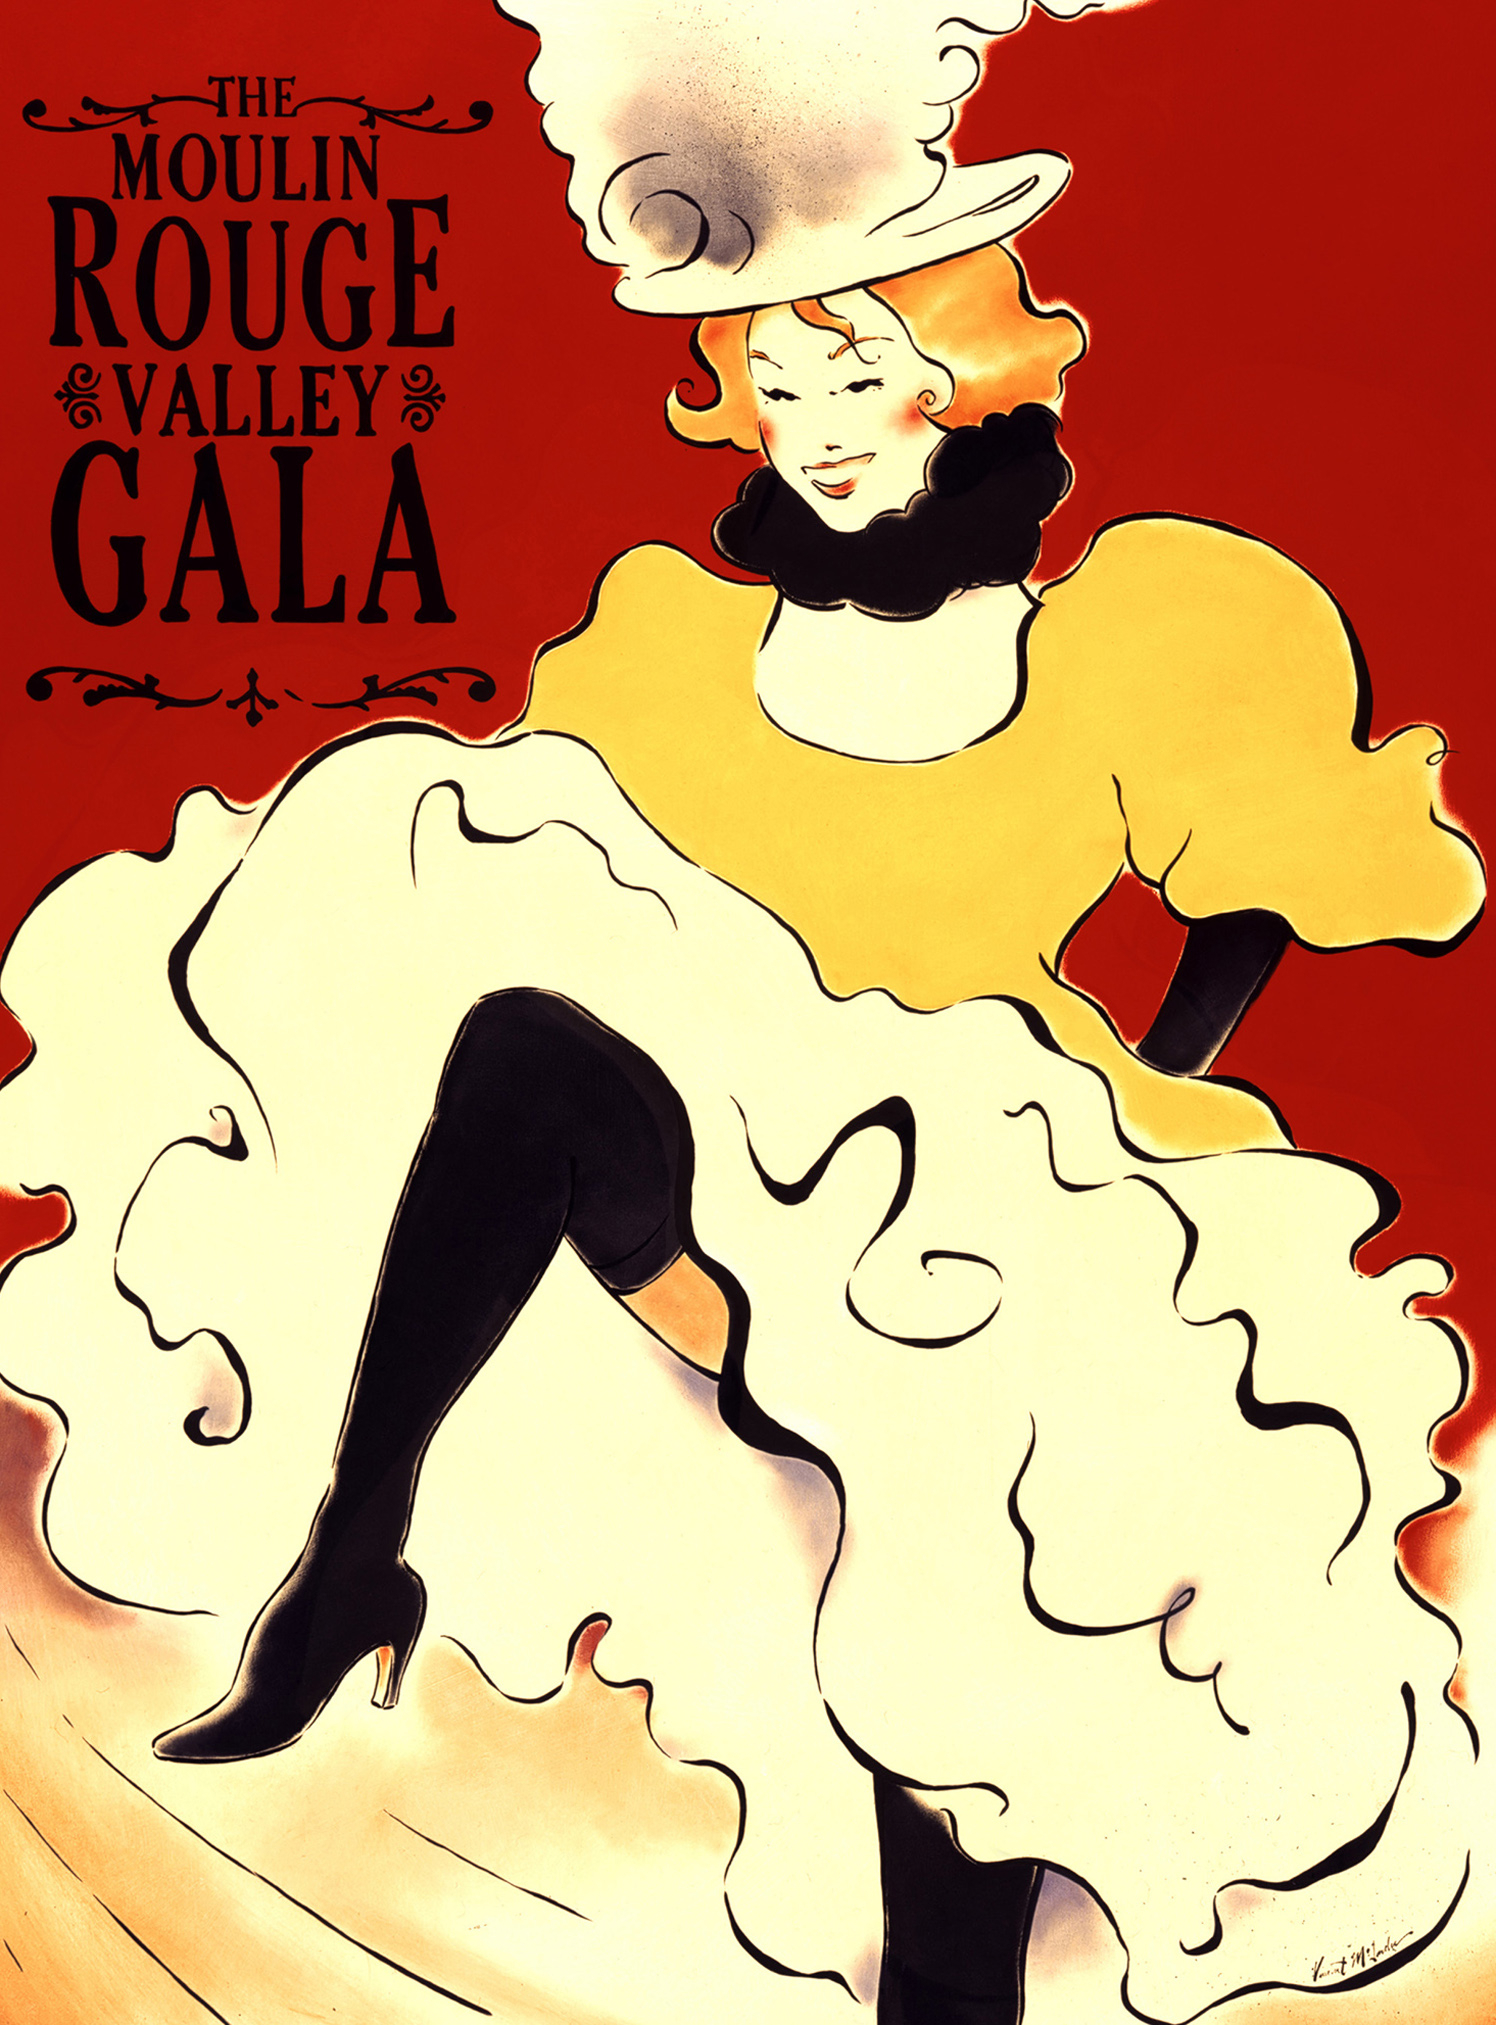 The Moulin Rouge Valley Gala